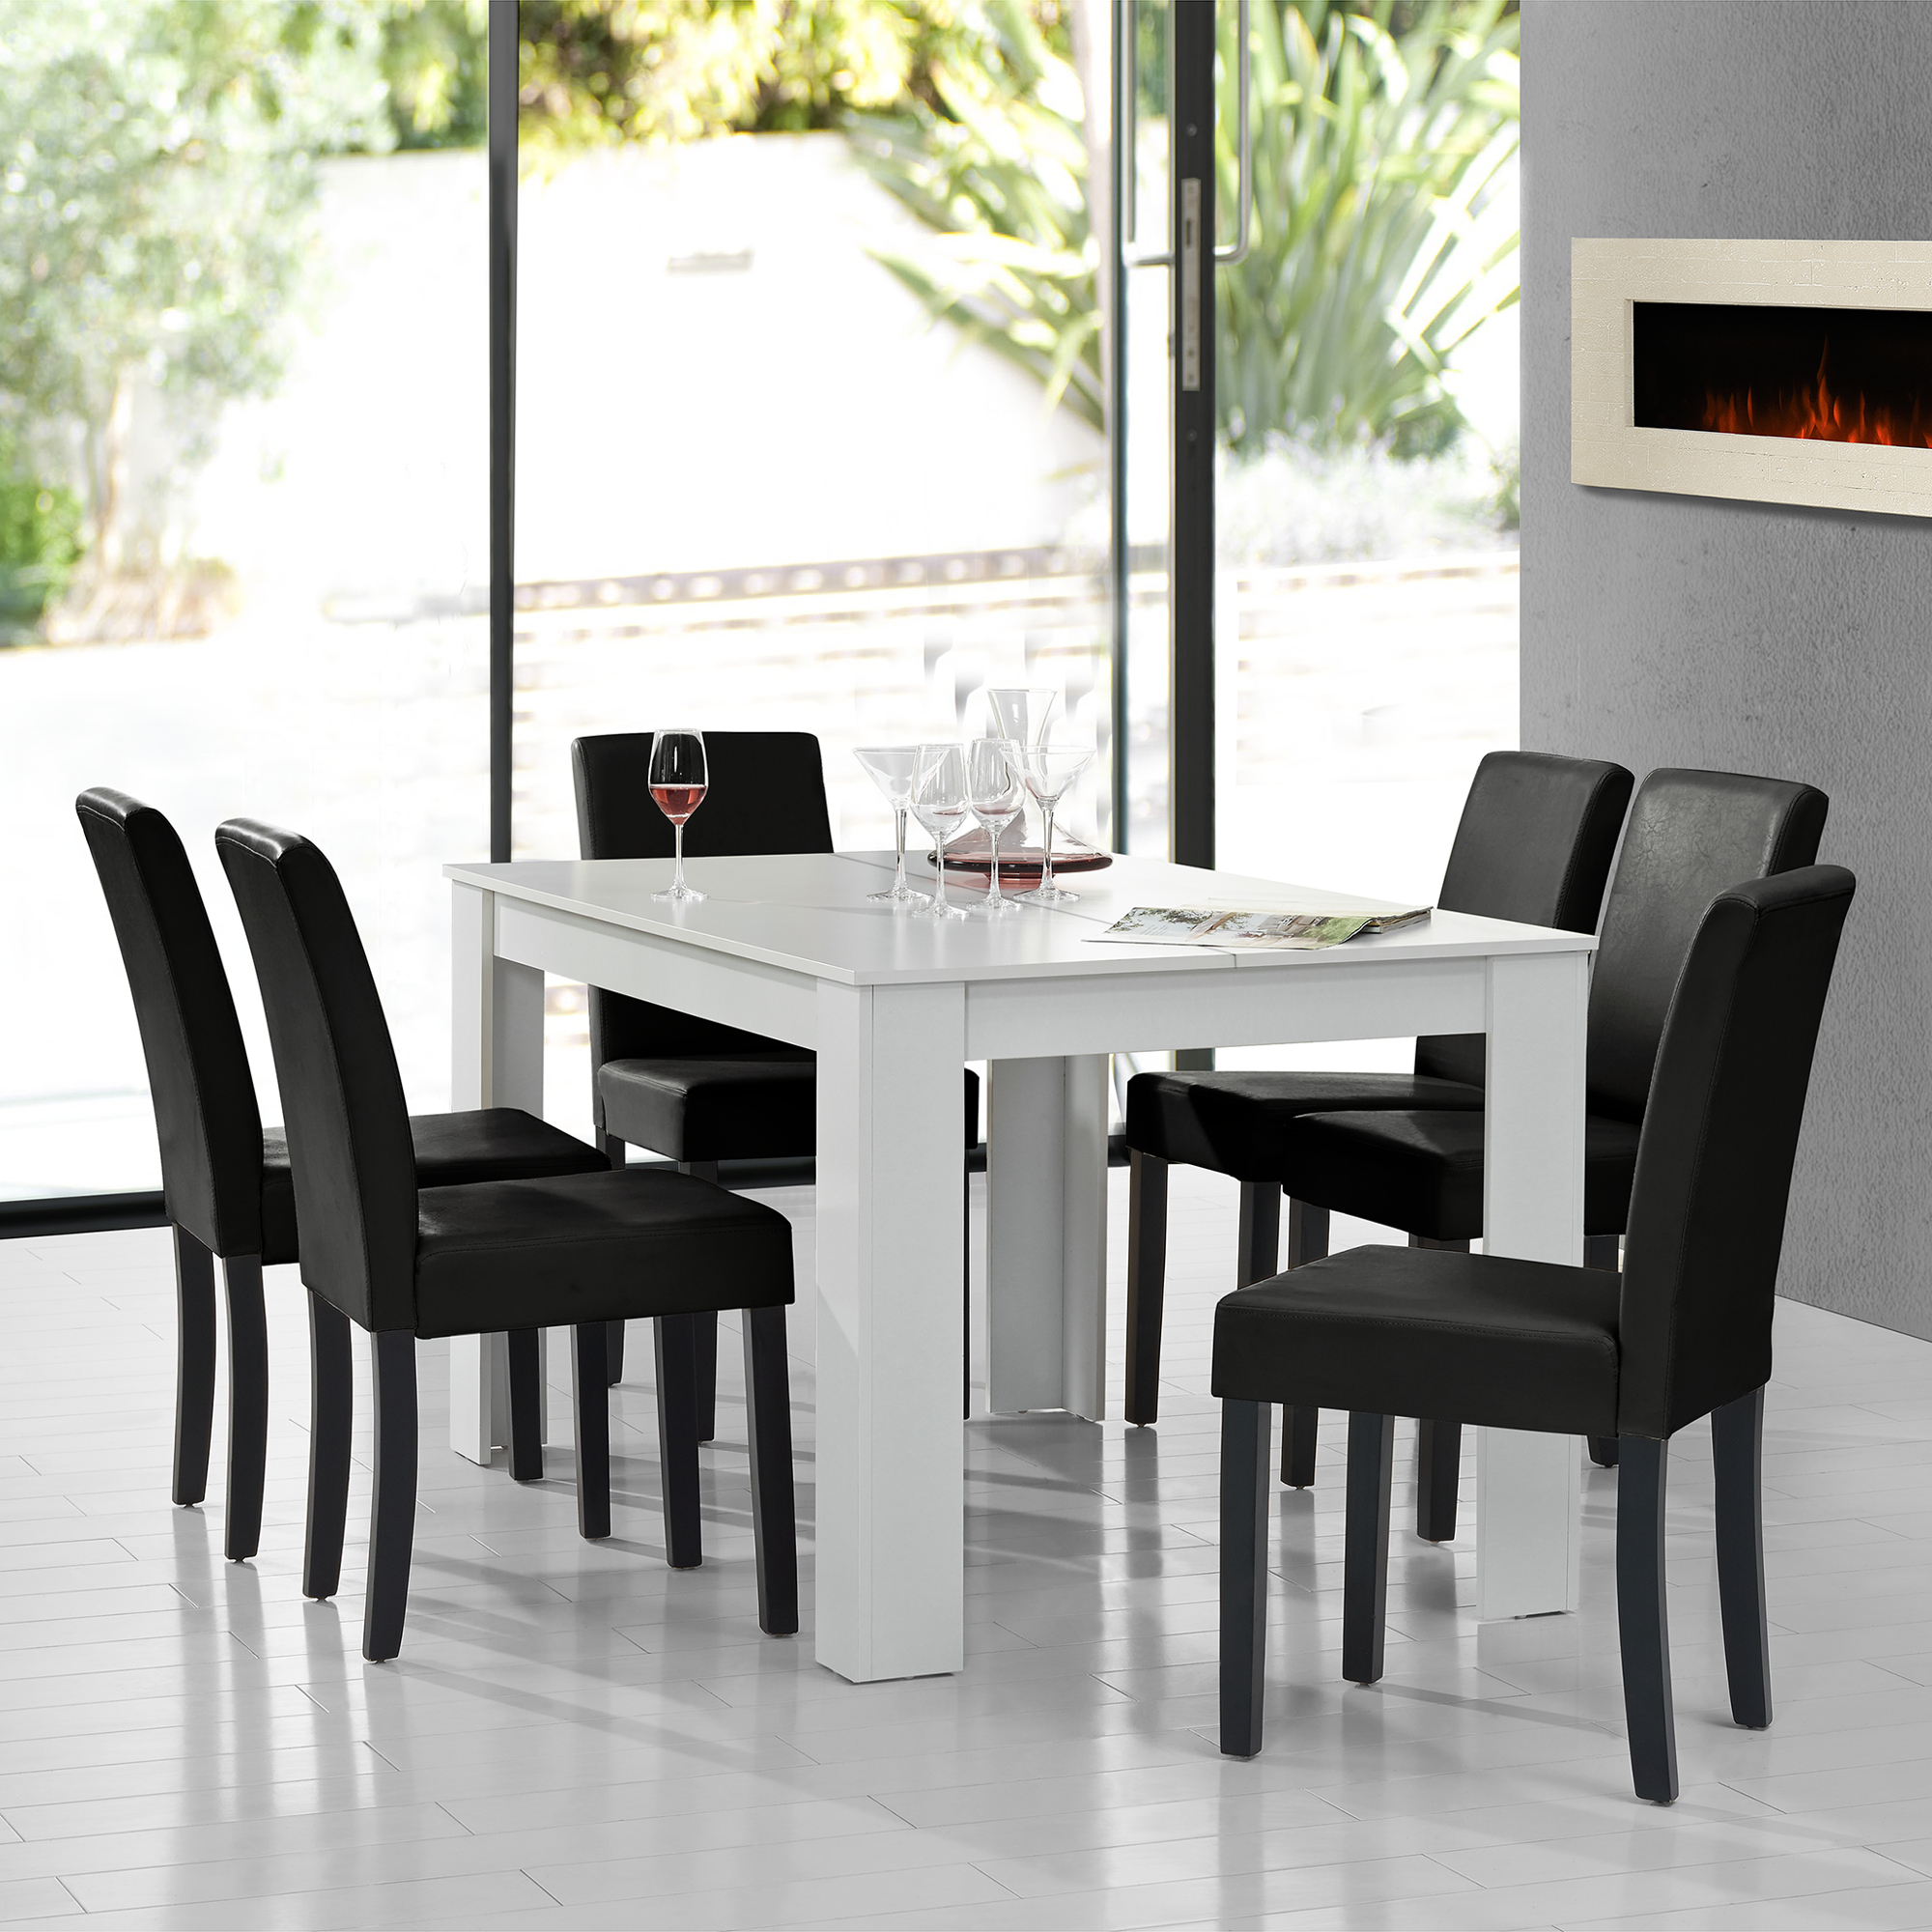 moderner esstisch eiche smoked 180x100cm tisch esszimmer dunkel ebay. Black Bedroom Furniture Sets. Home Design Ideas